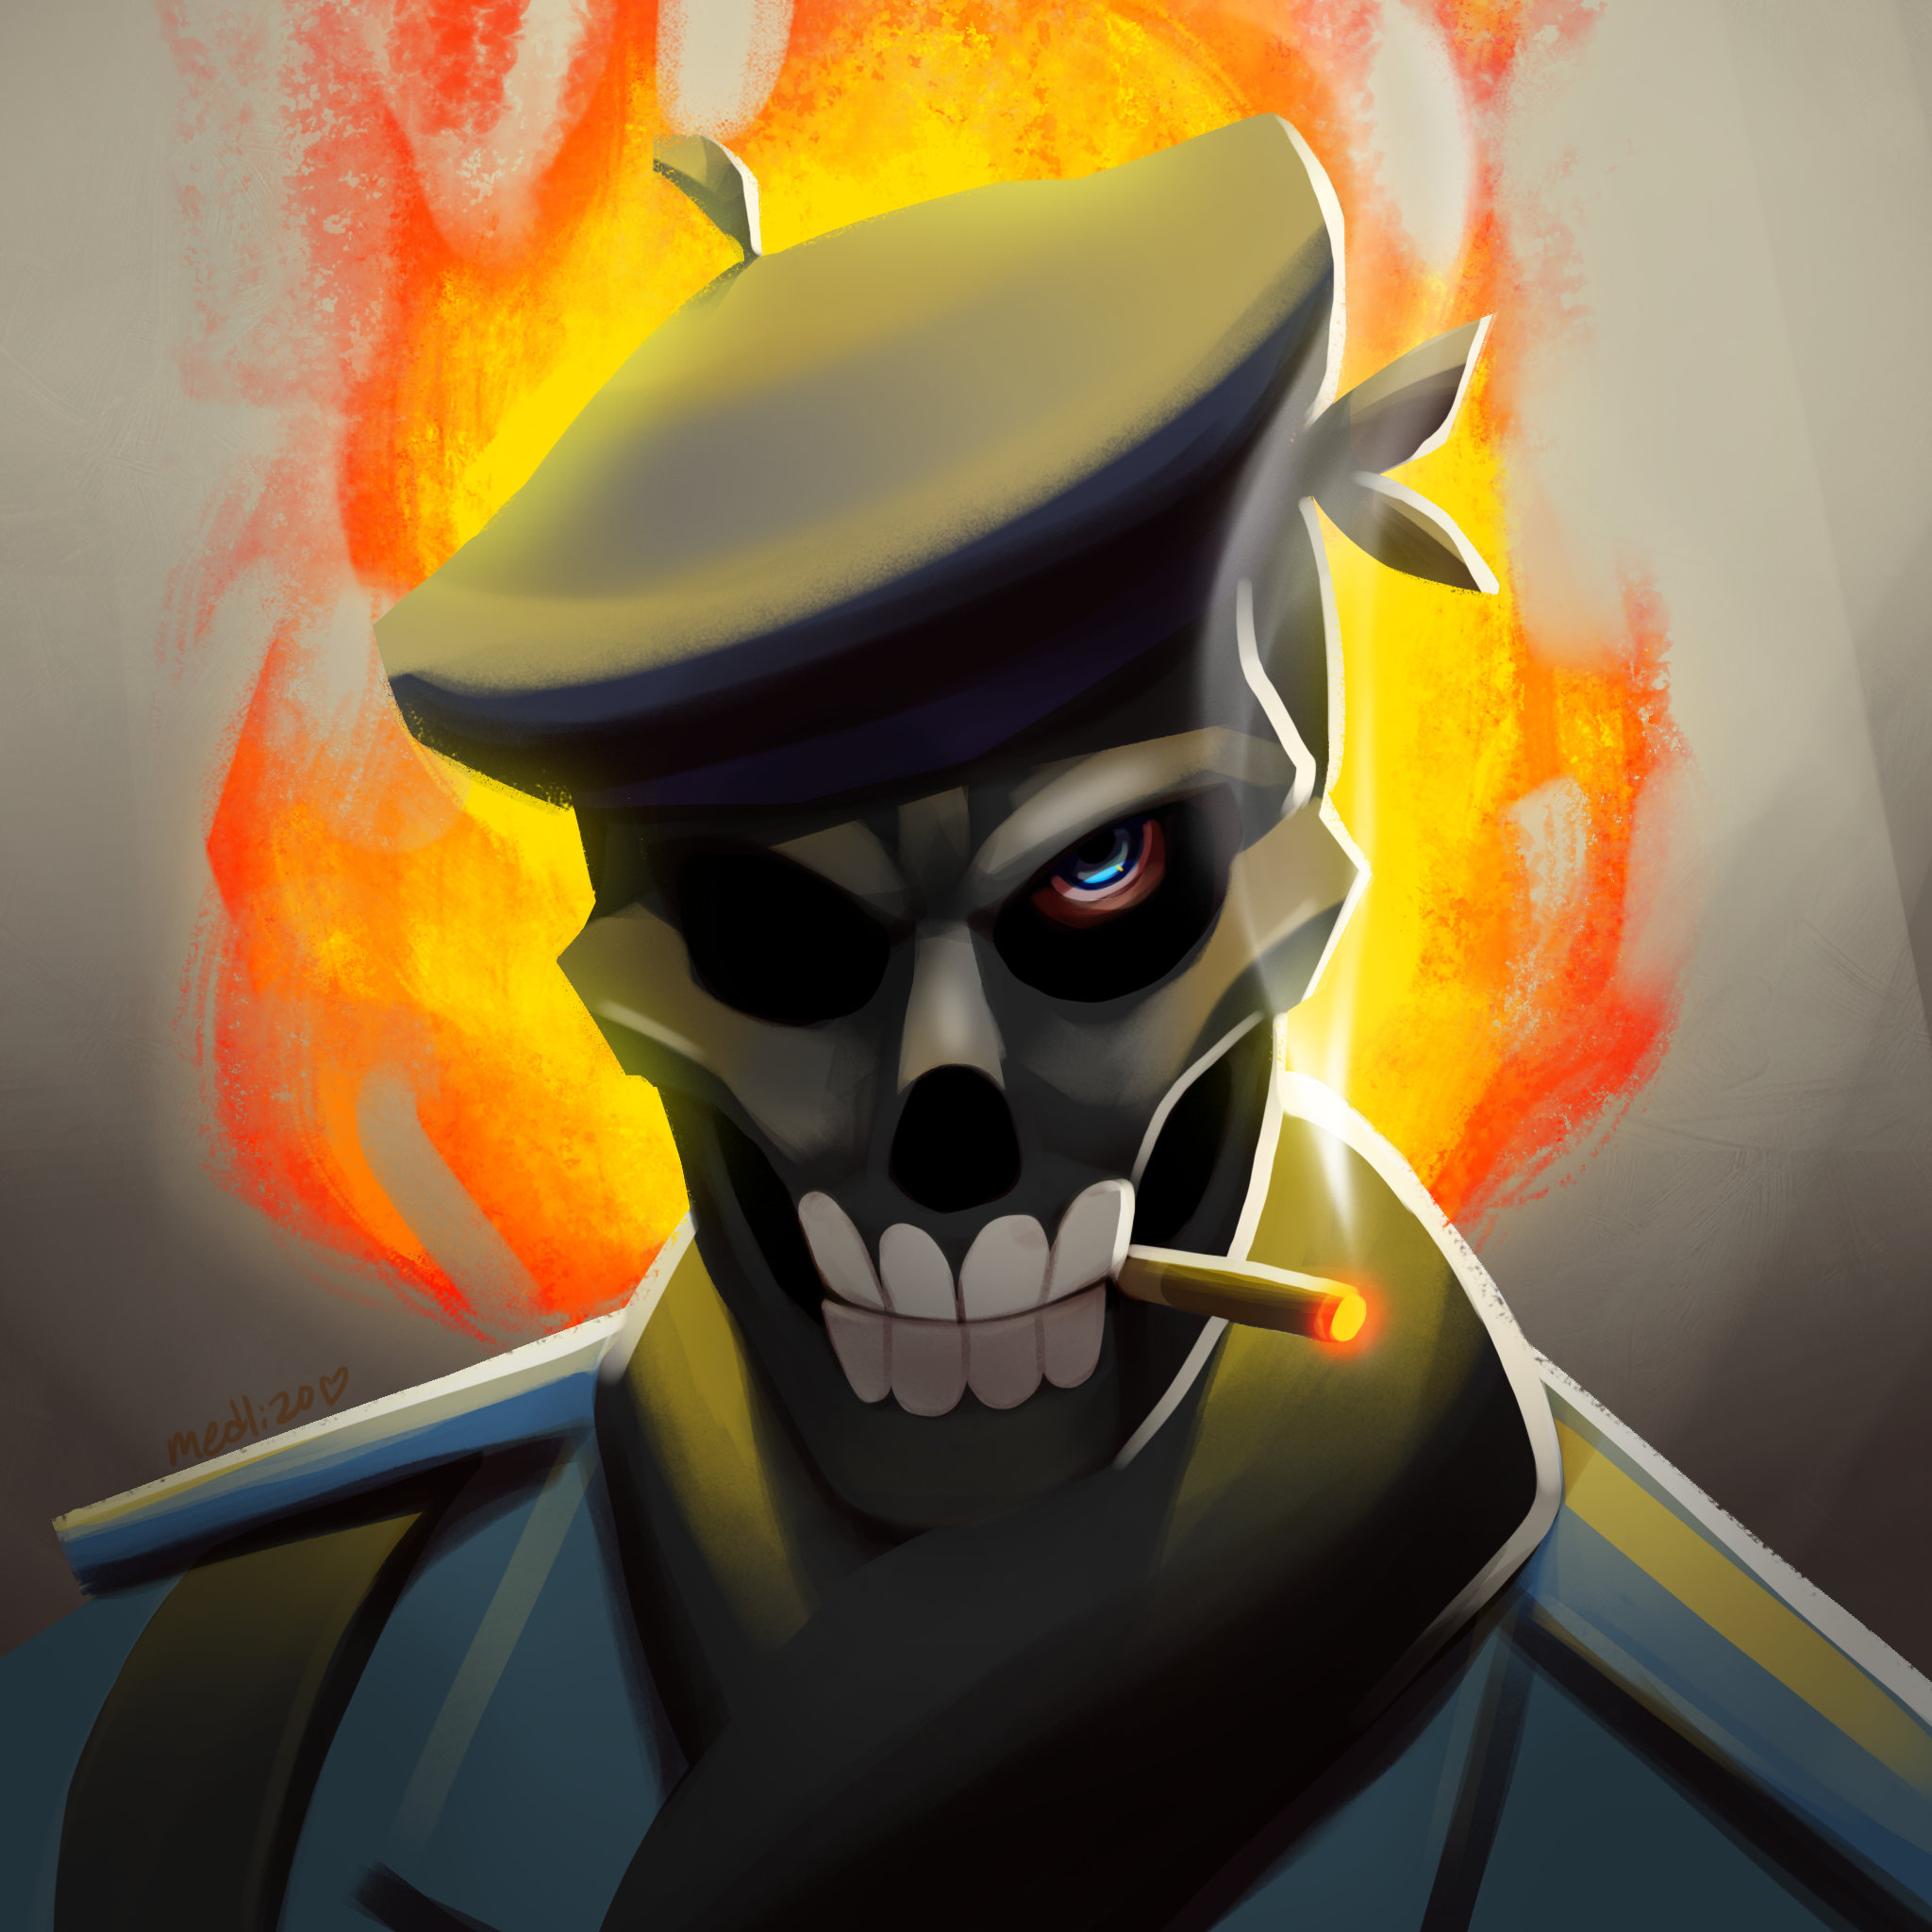 a loadout icon i painted for a cool dude games teamfortress2